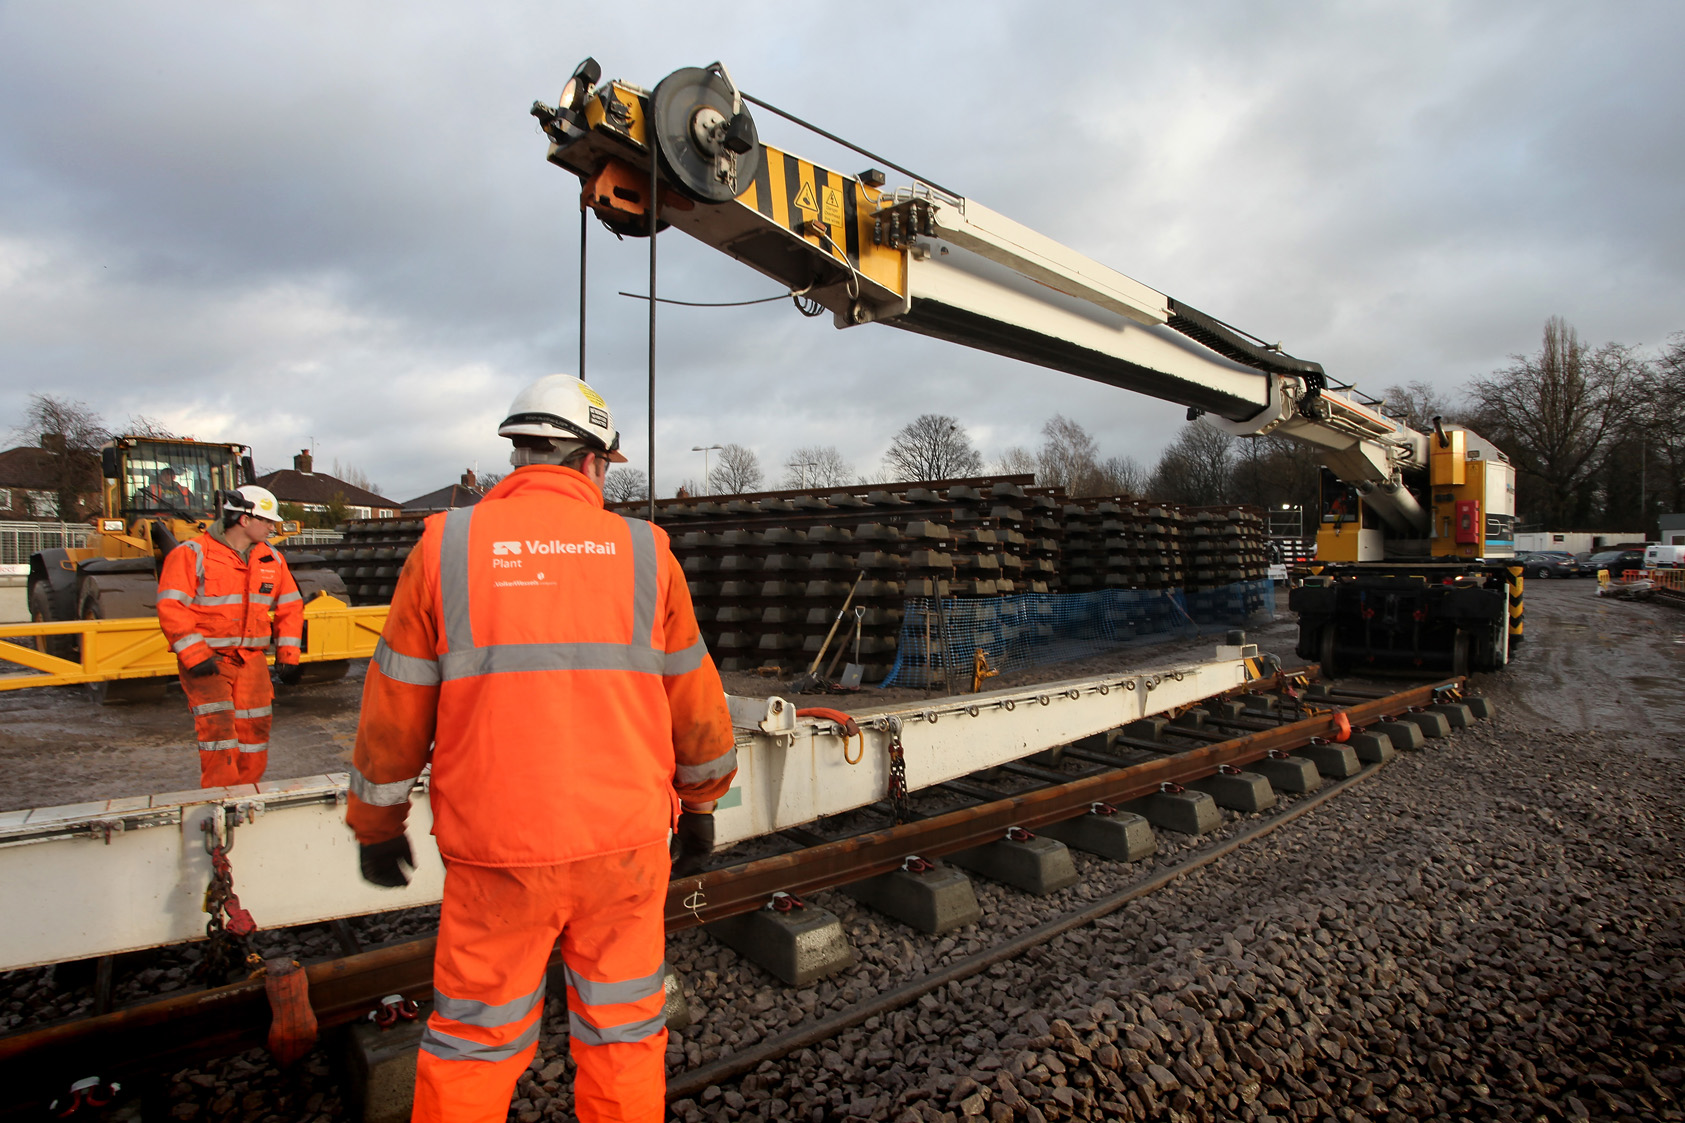 VolkerRail employees working at Manchester